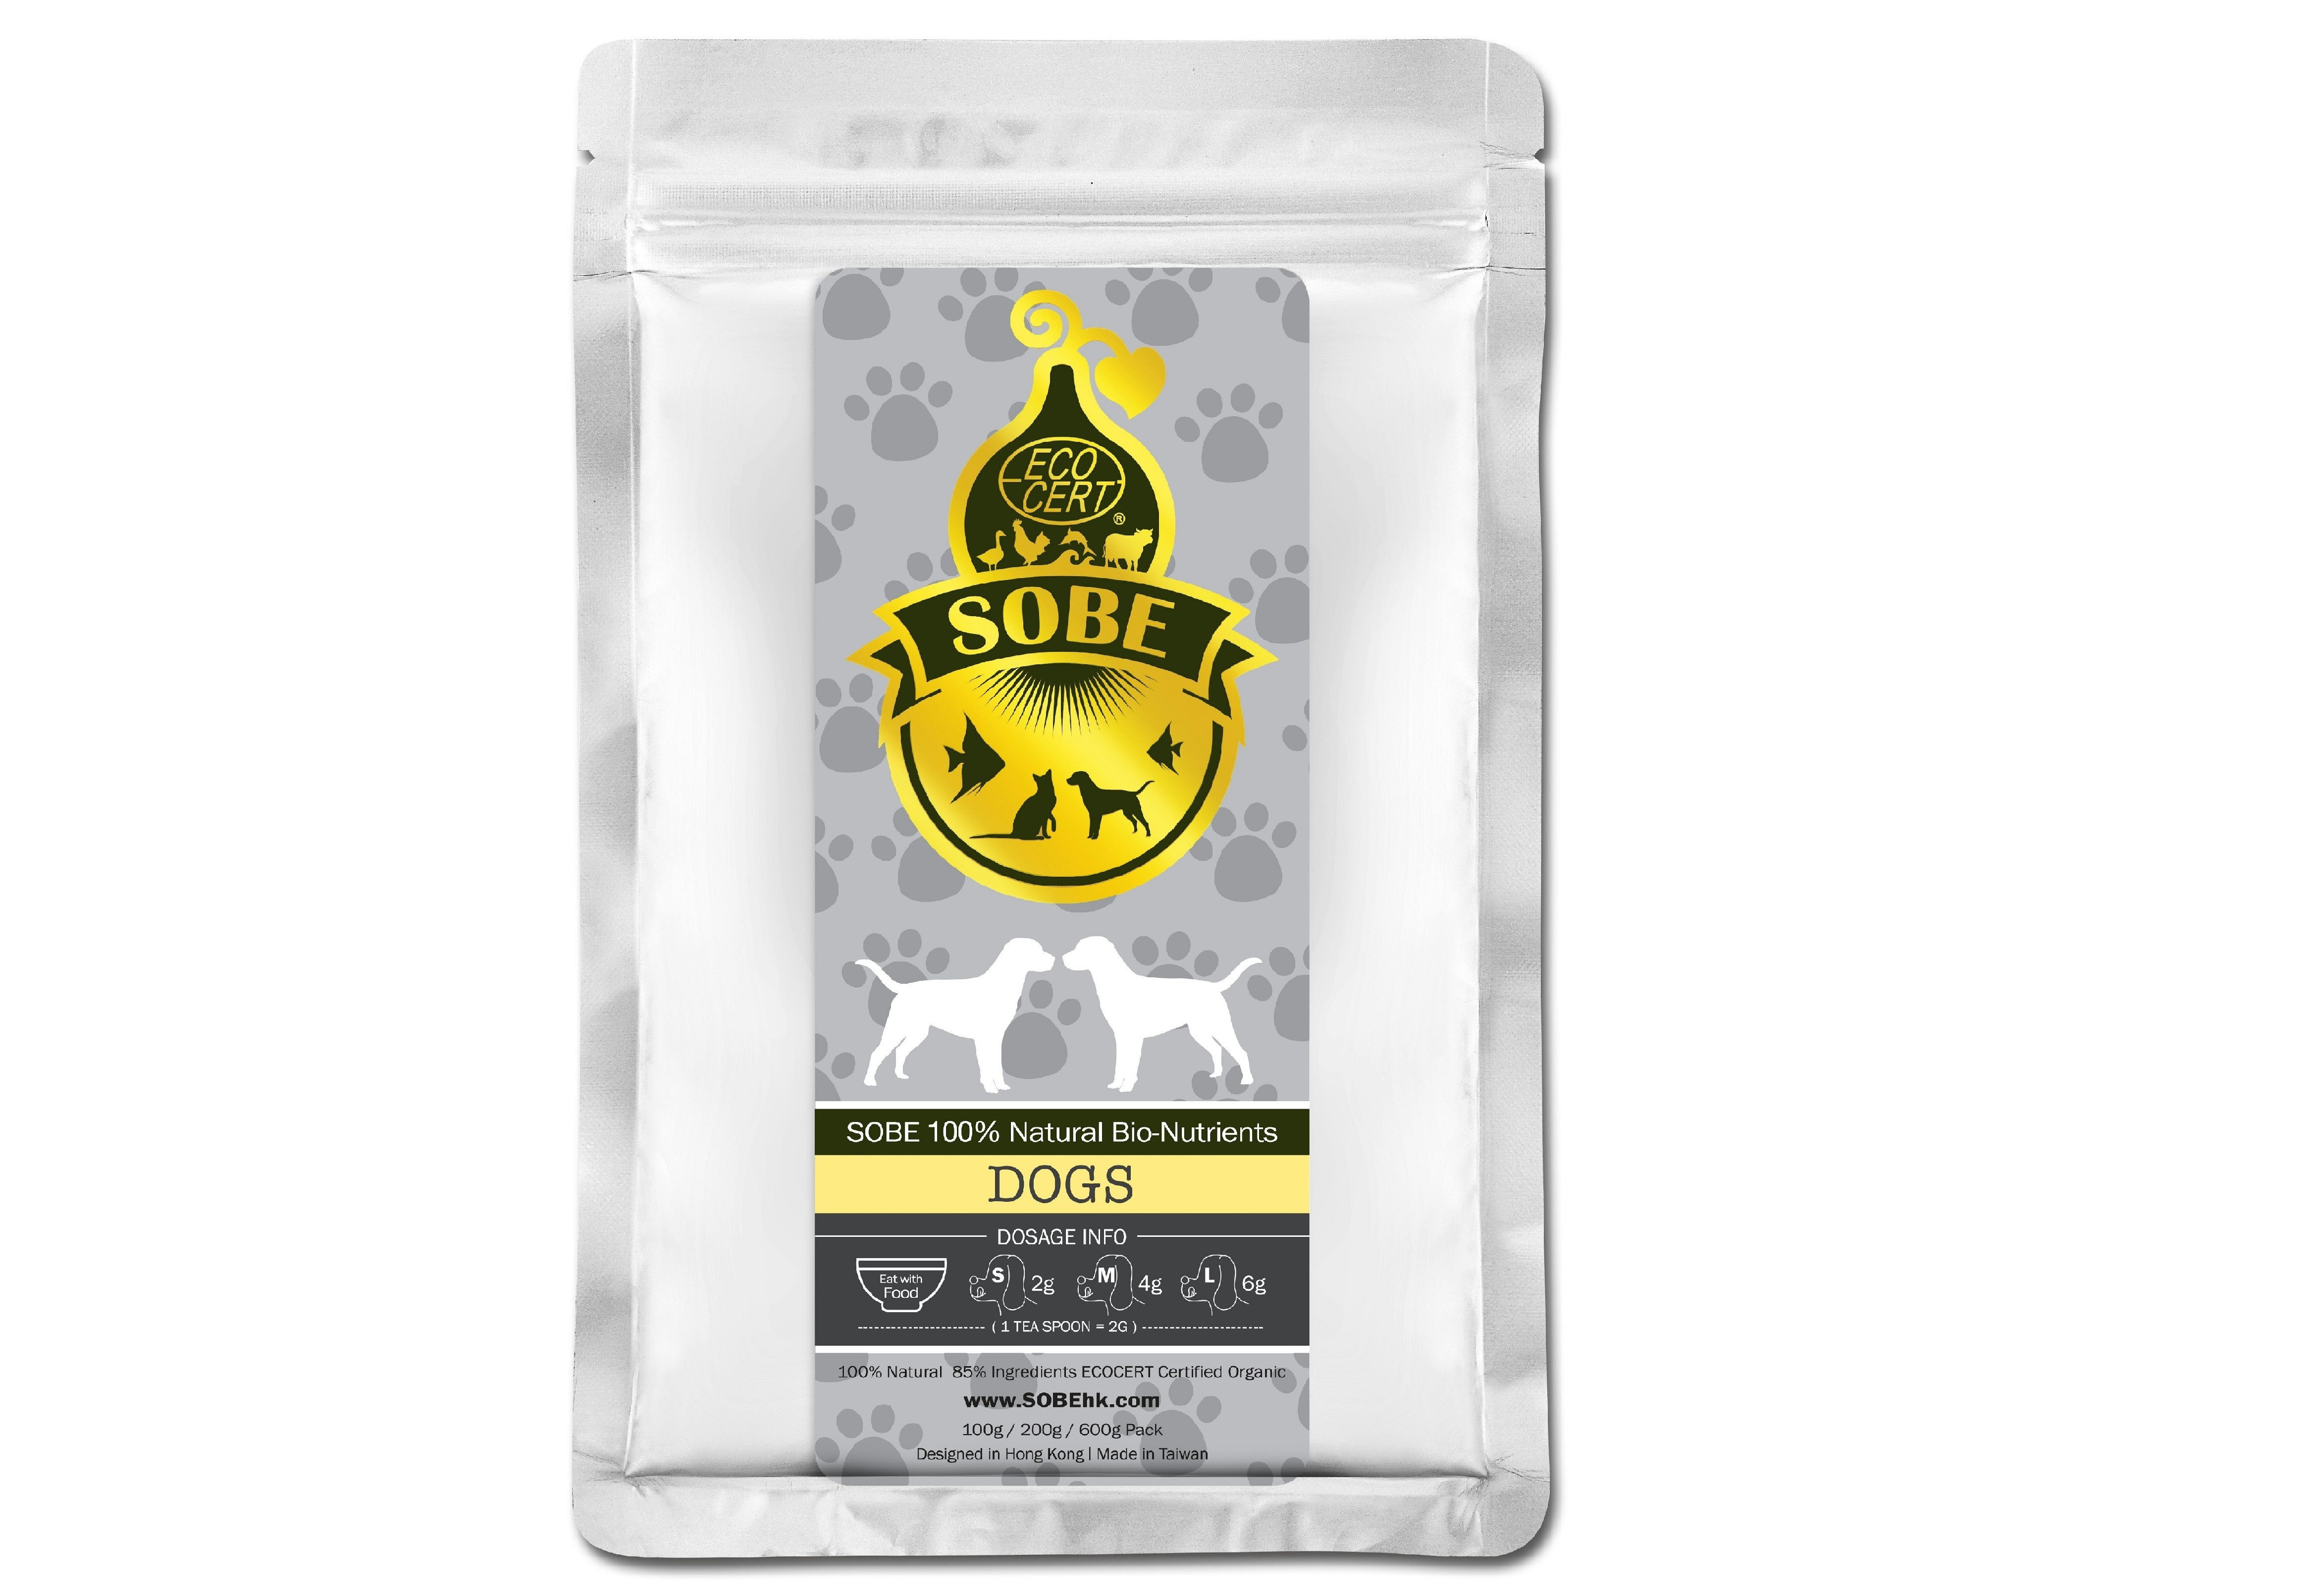 SOBE 100% Natural Bio-Nutrients - Dogs (100g Aluminium pack) 100%全天然寵物益生素 - 狗 (100g 鋁包)